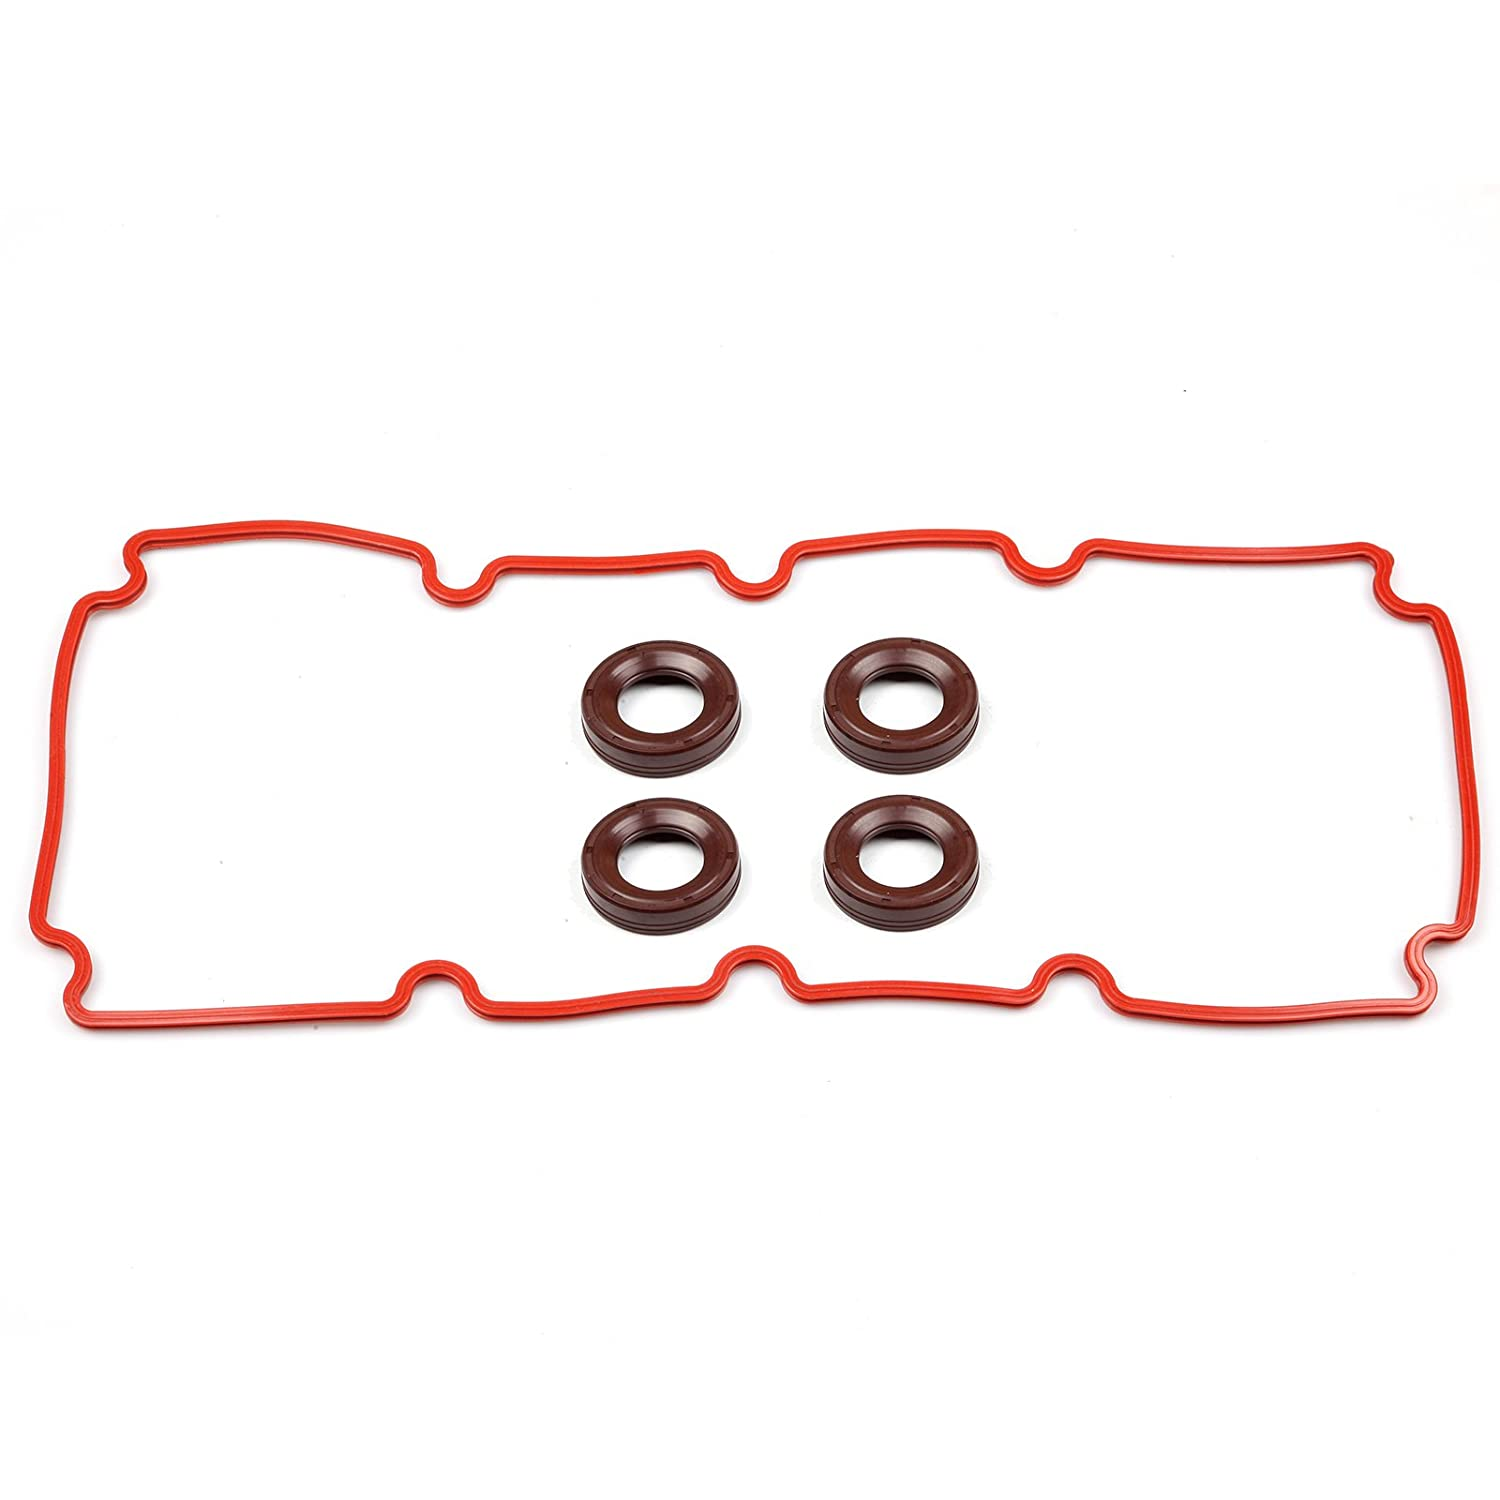 ECCPP For 2000-2005 Dodge Neon Chrysler Cirrus 2.0L Cylinder Valve Cover Gasket Set 110264-5211-1412331